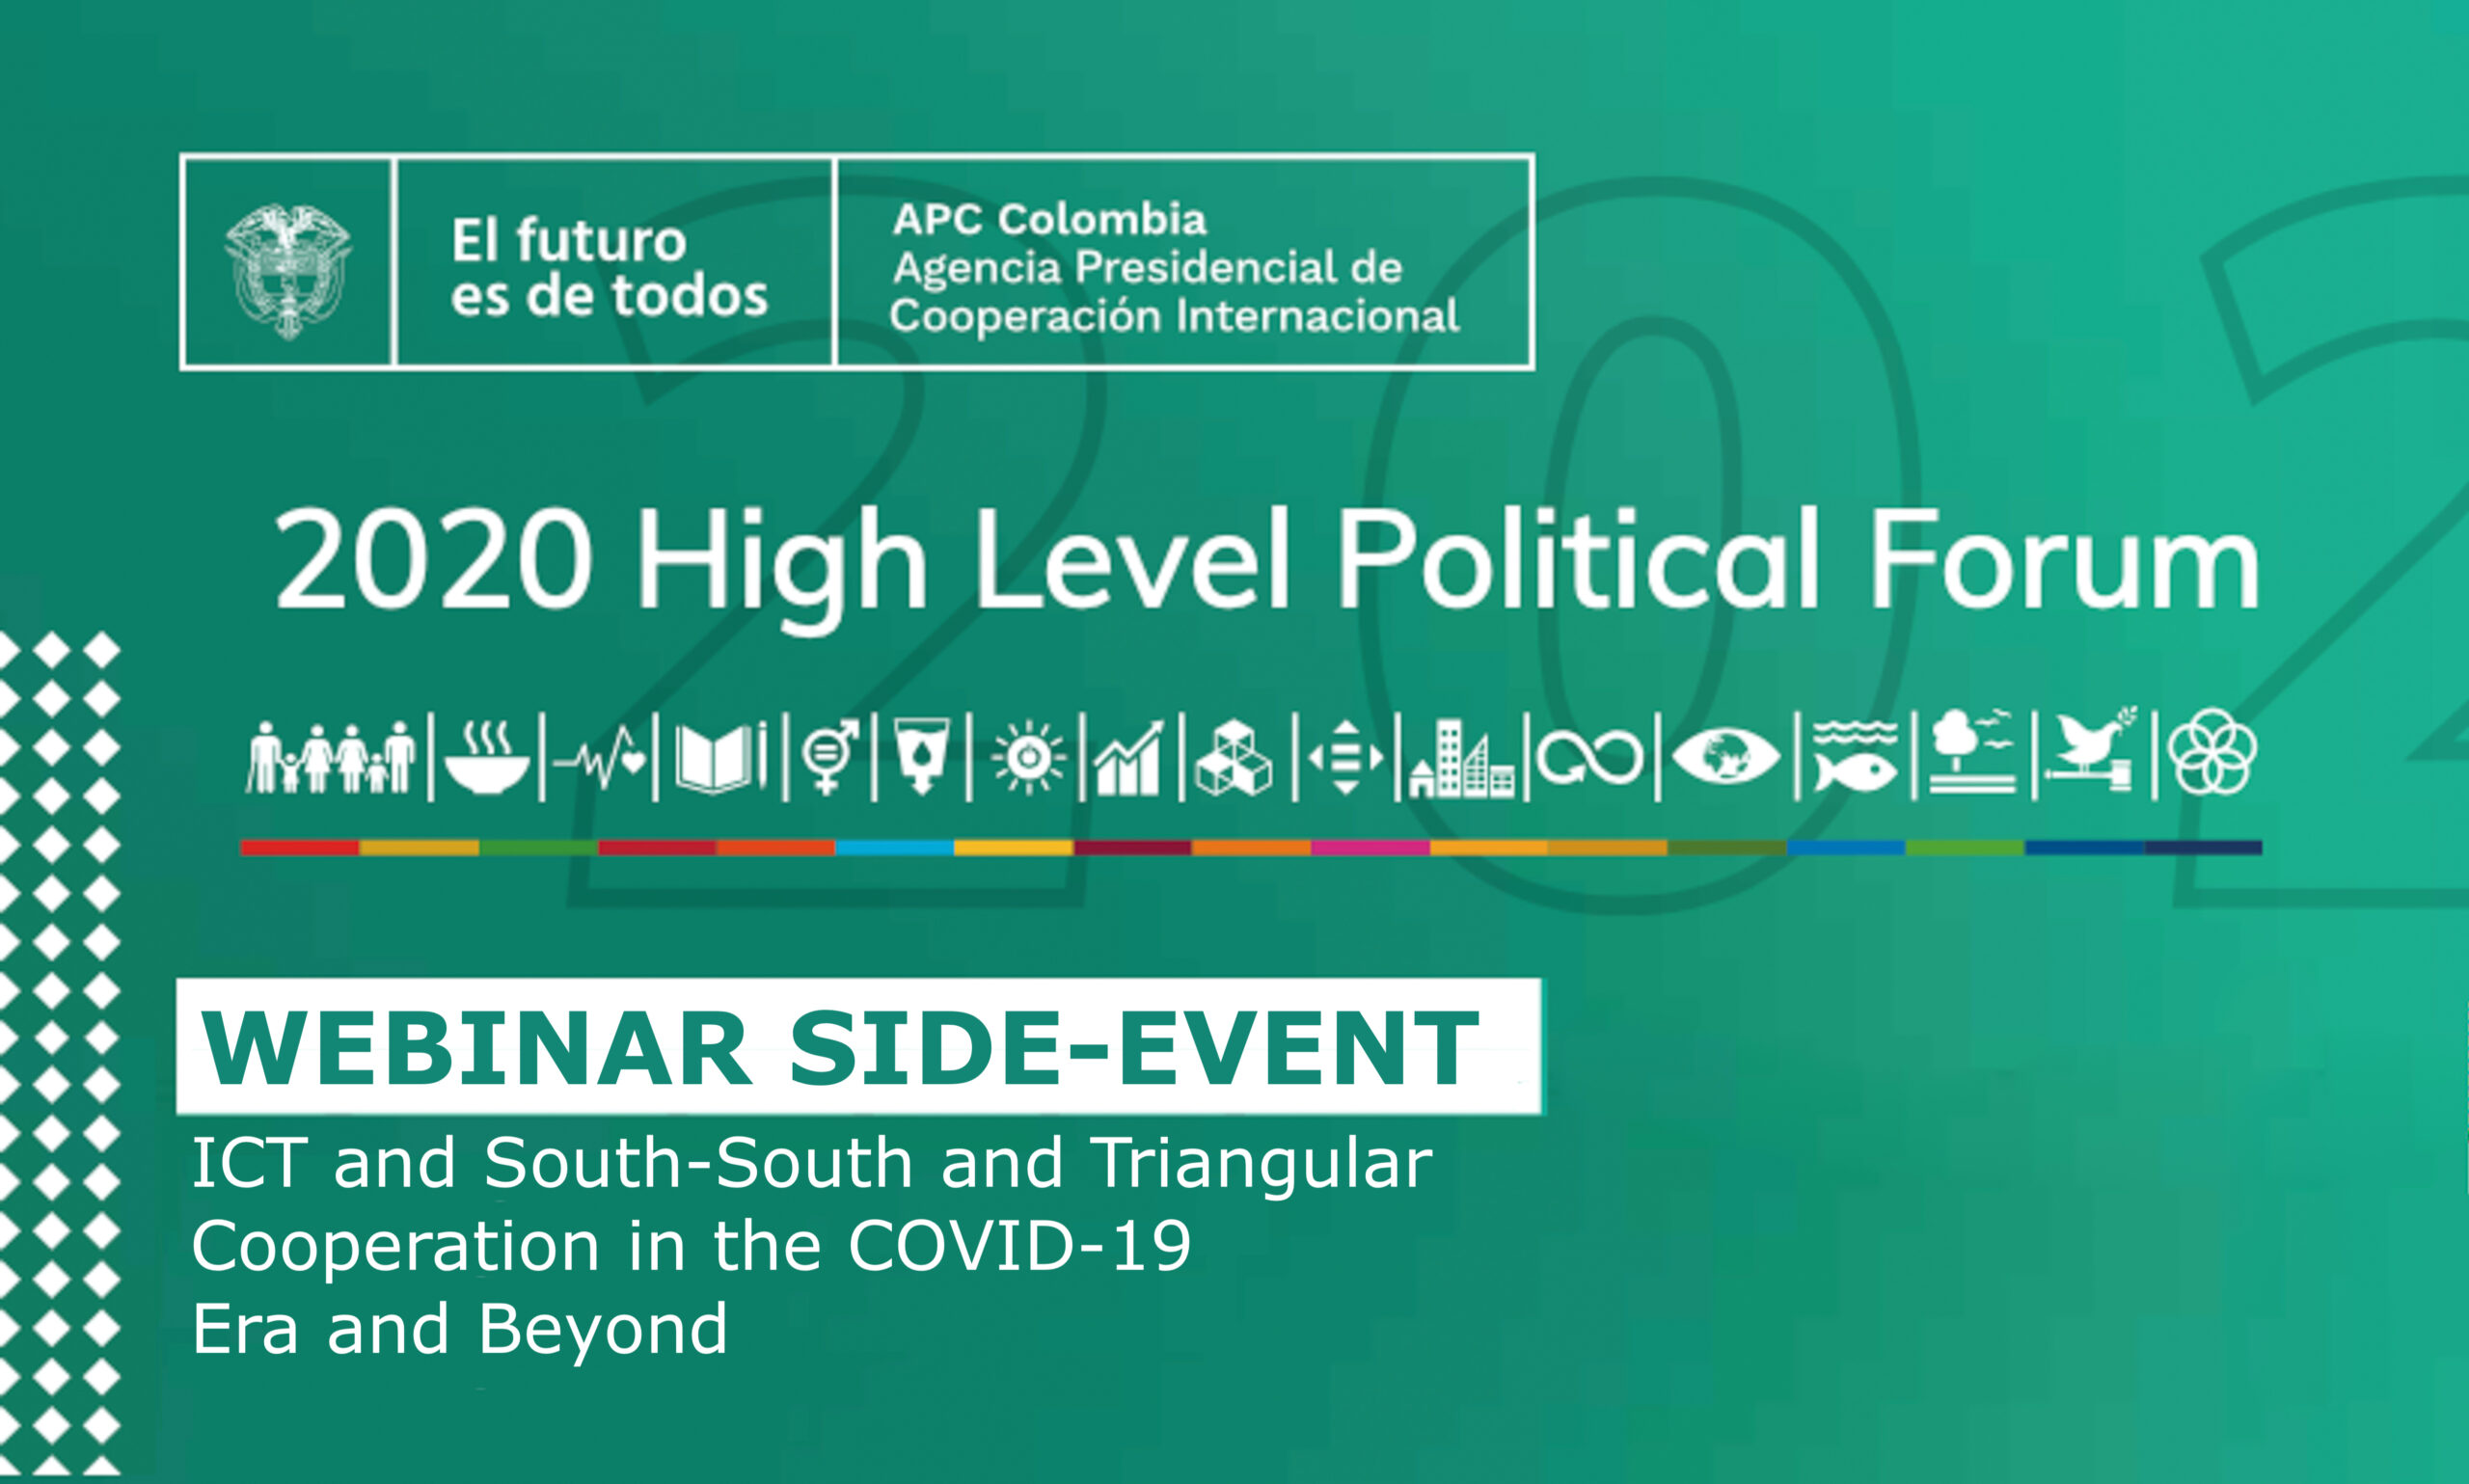 ICT and South-South and Triangular Cooperation in the COVID-19  Era and Beyond